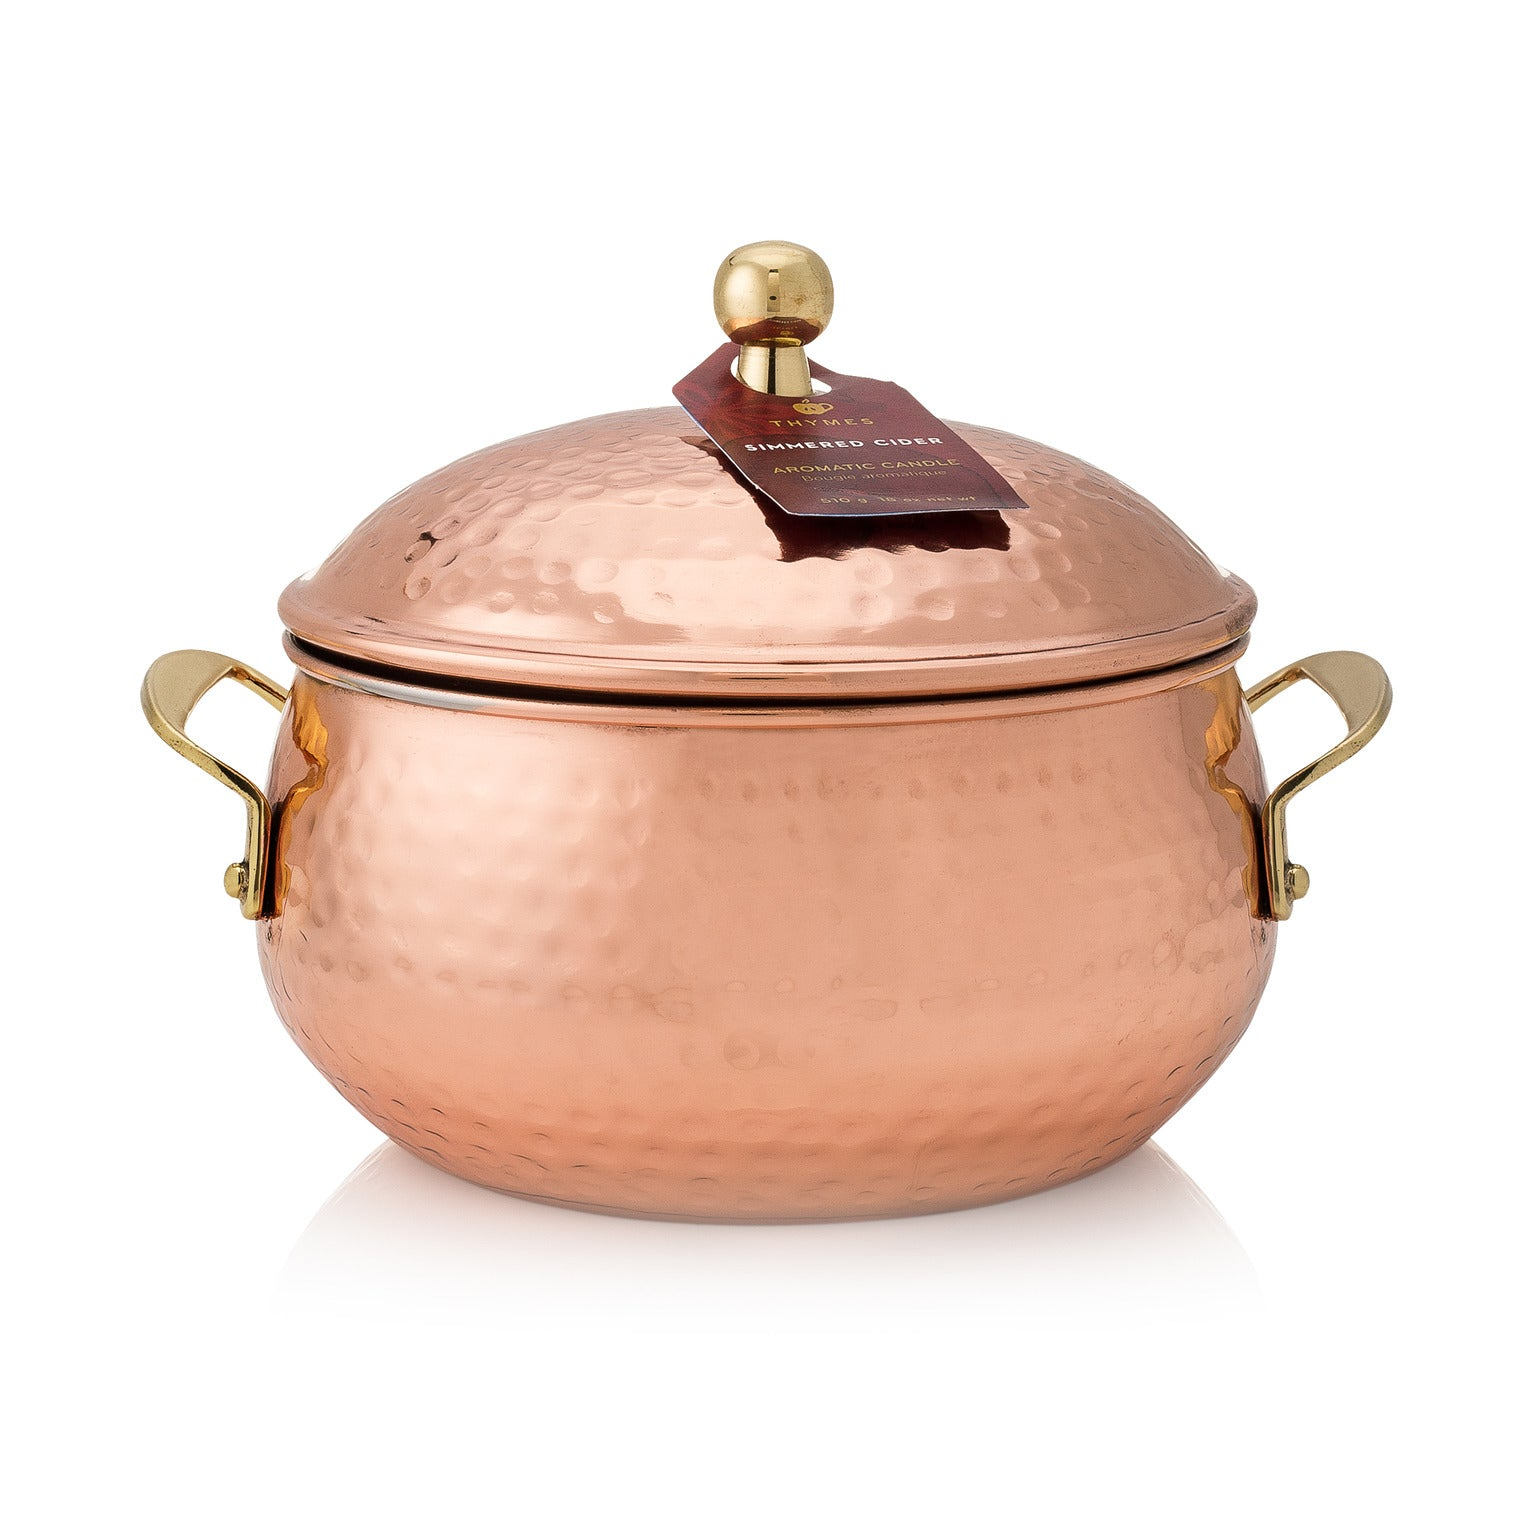 Thymes Simmered Cider Copper Pot Candle